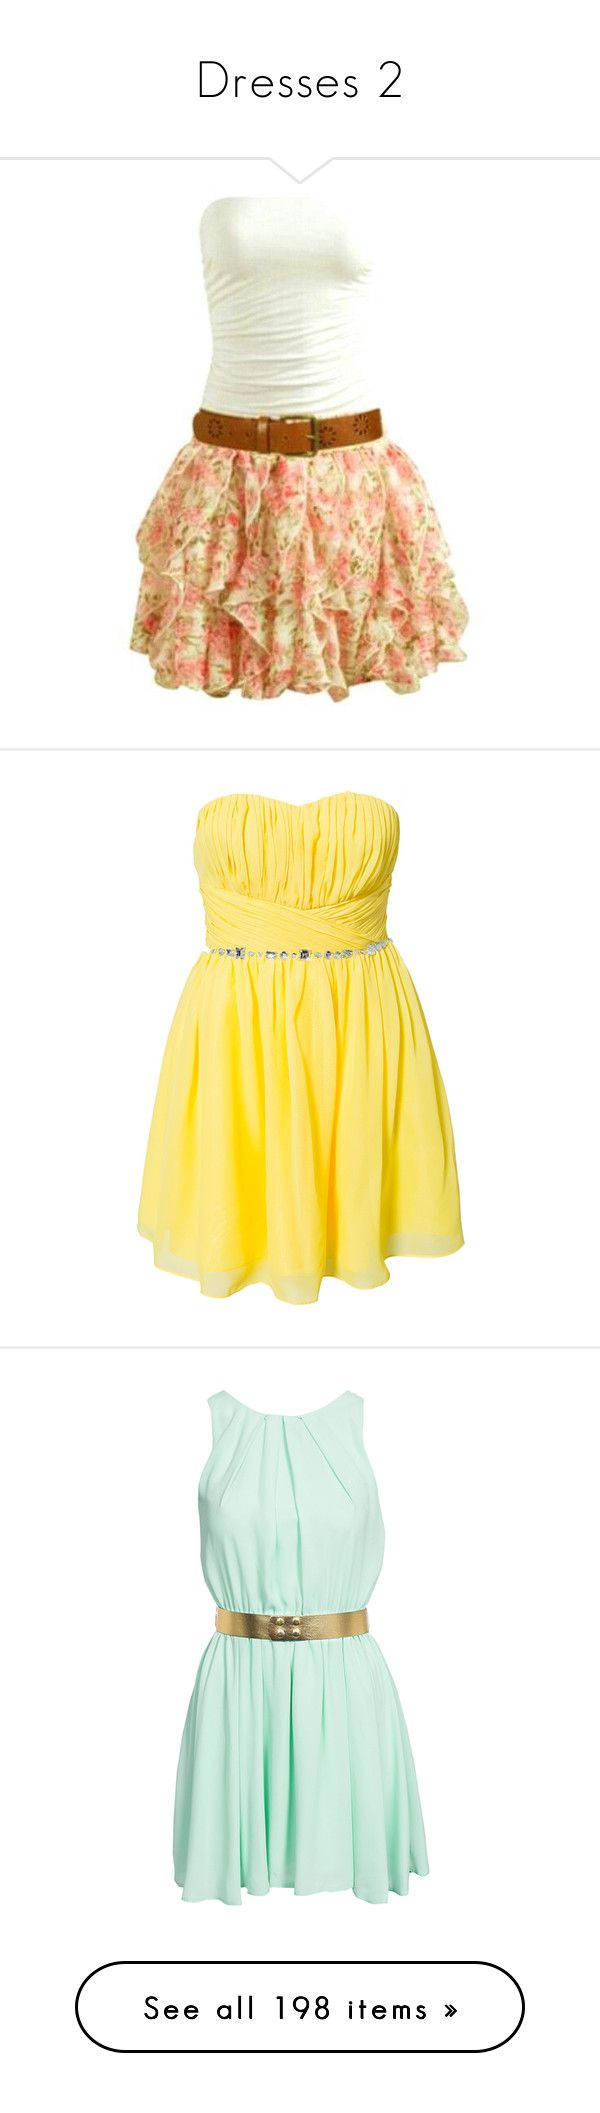 """""""Dresses 2"""" by maggie007armstrong ❤ liked on Polyvore featuring dresses, short dresses, vestidos, beige dress, beige short dress, mini dress, yellow, party dresses, womens-fashion and yellow dress"""